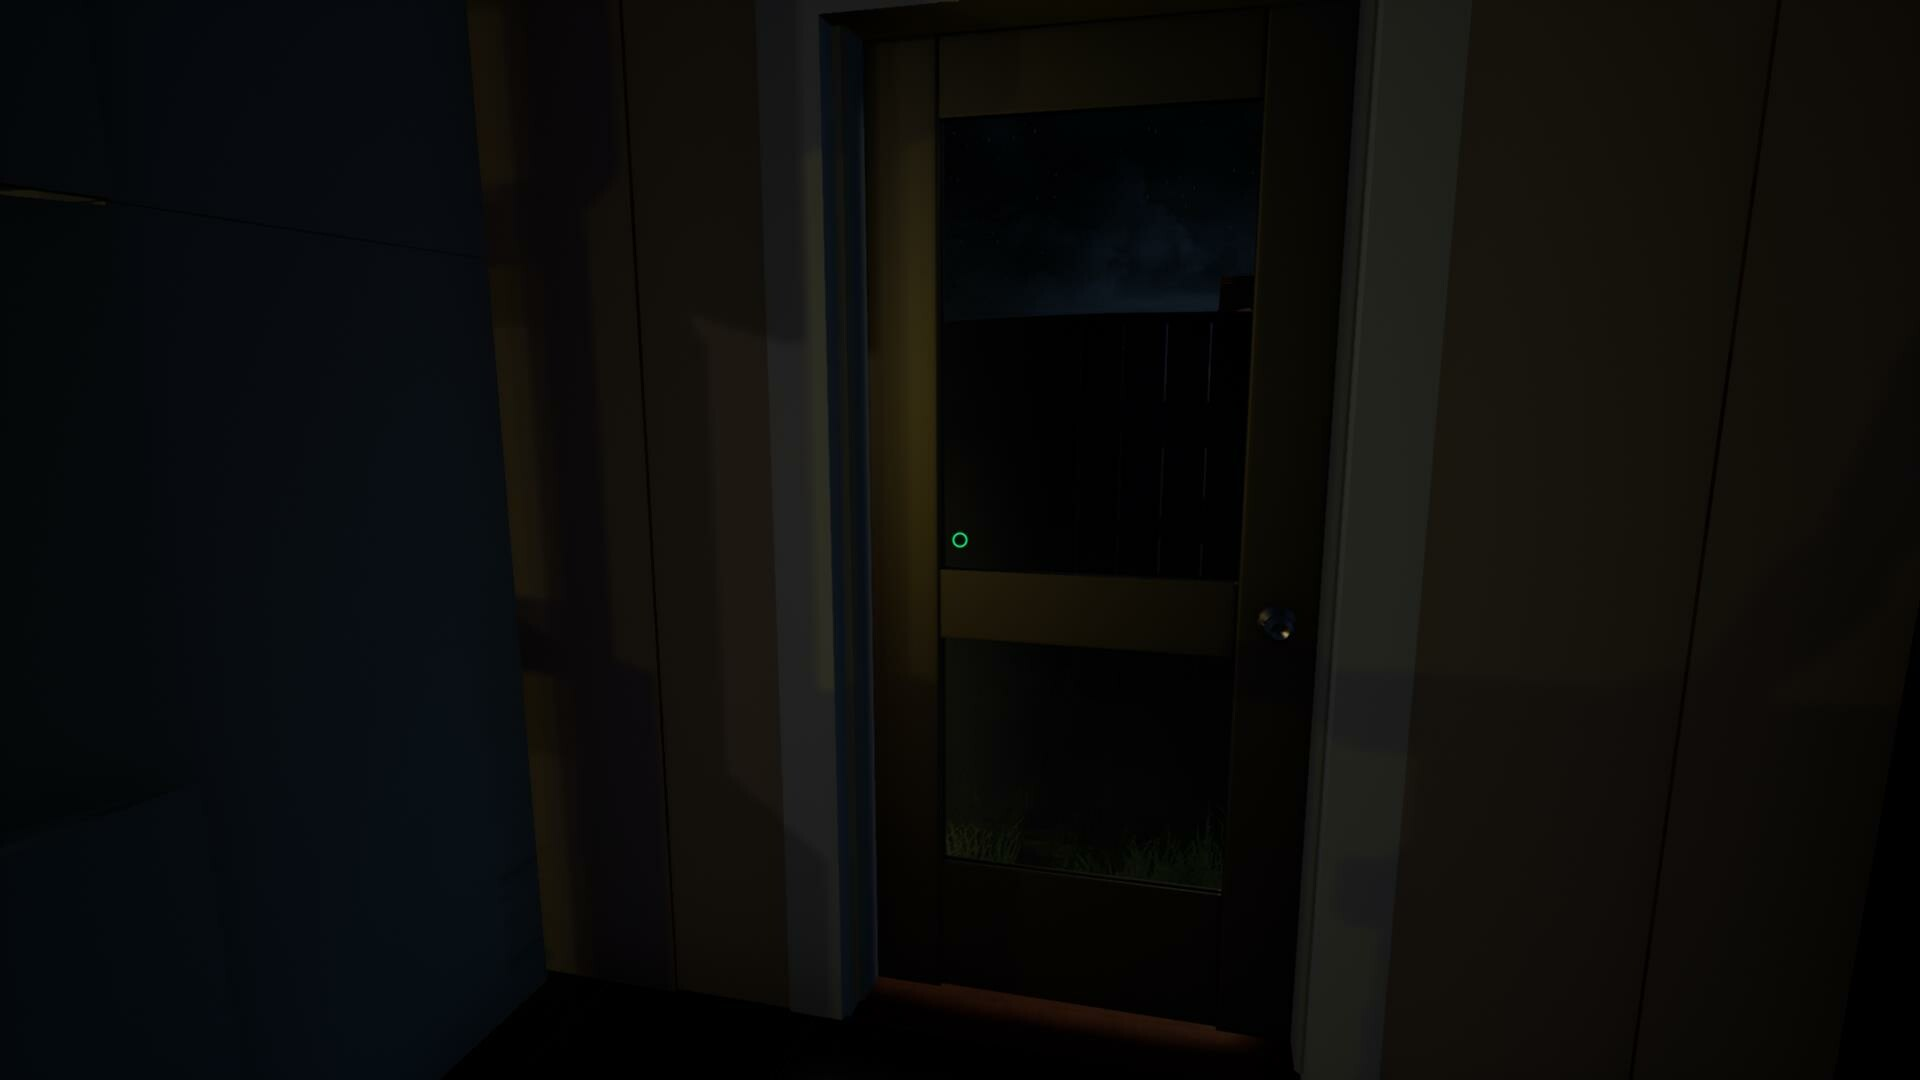 This door remains locked until the end of the game. The player is trapped in the house,